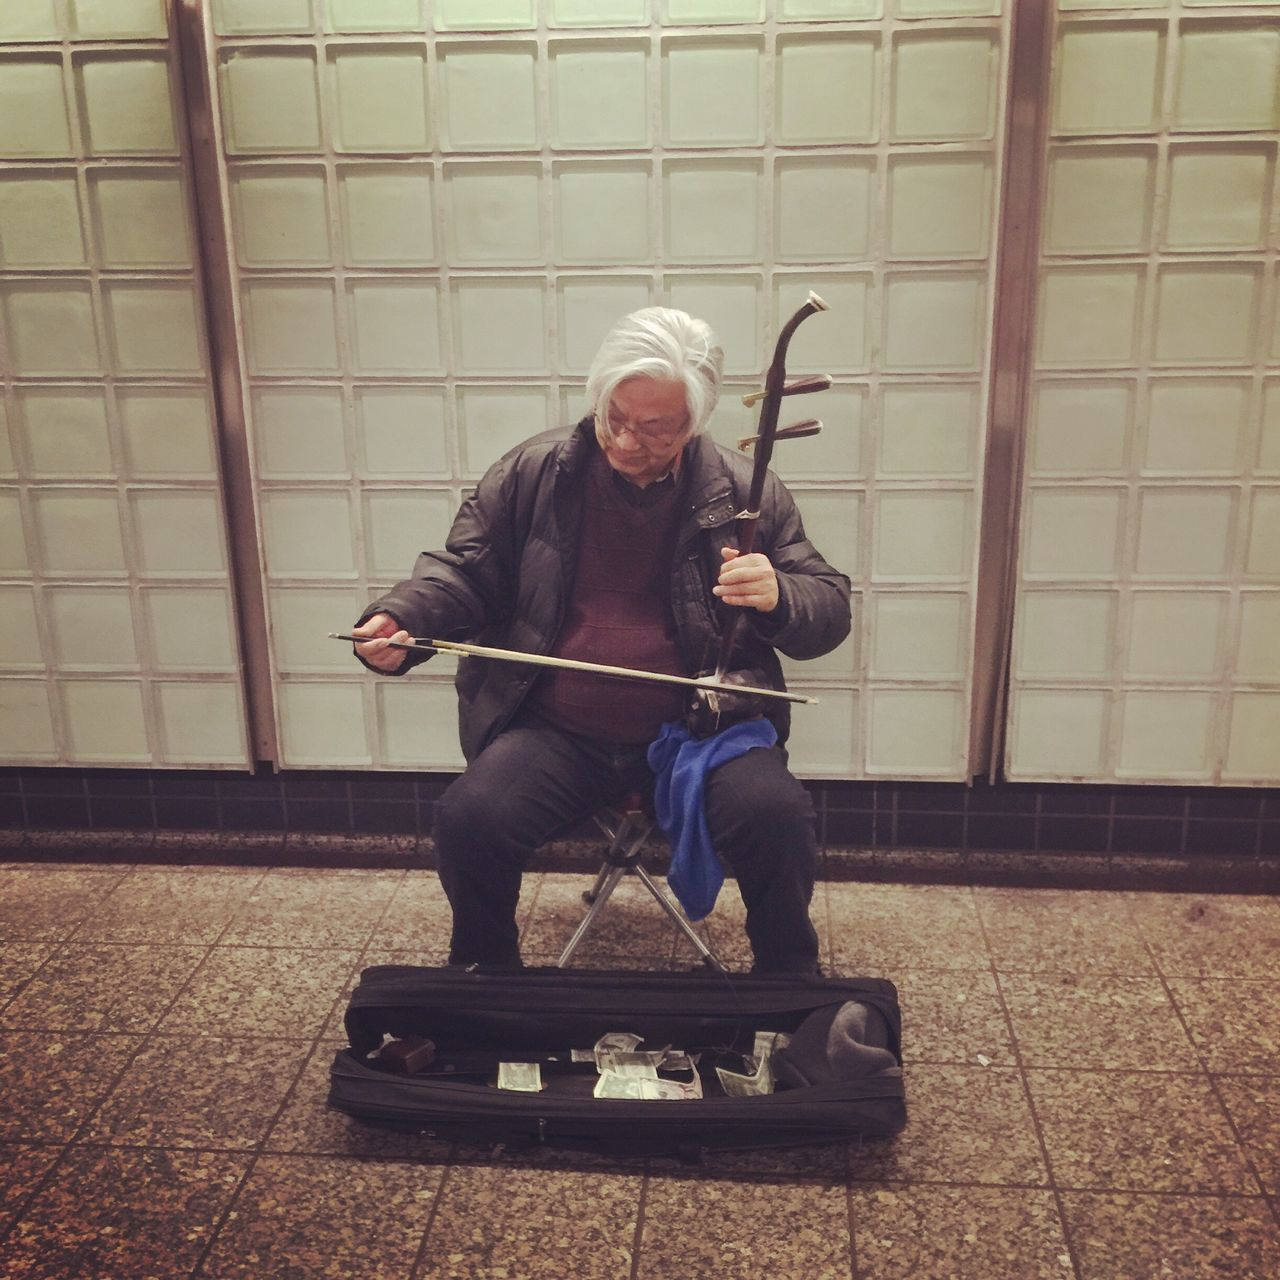 NYC Photography Subway Portraits NYC Subway Chinese Music Instruments Musician